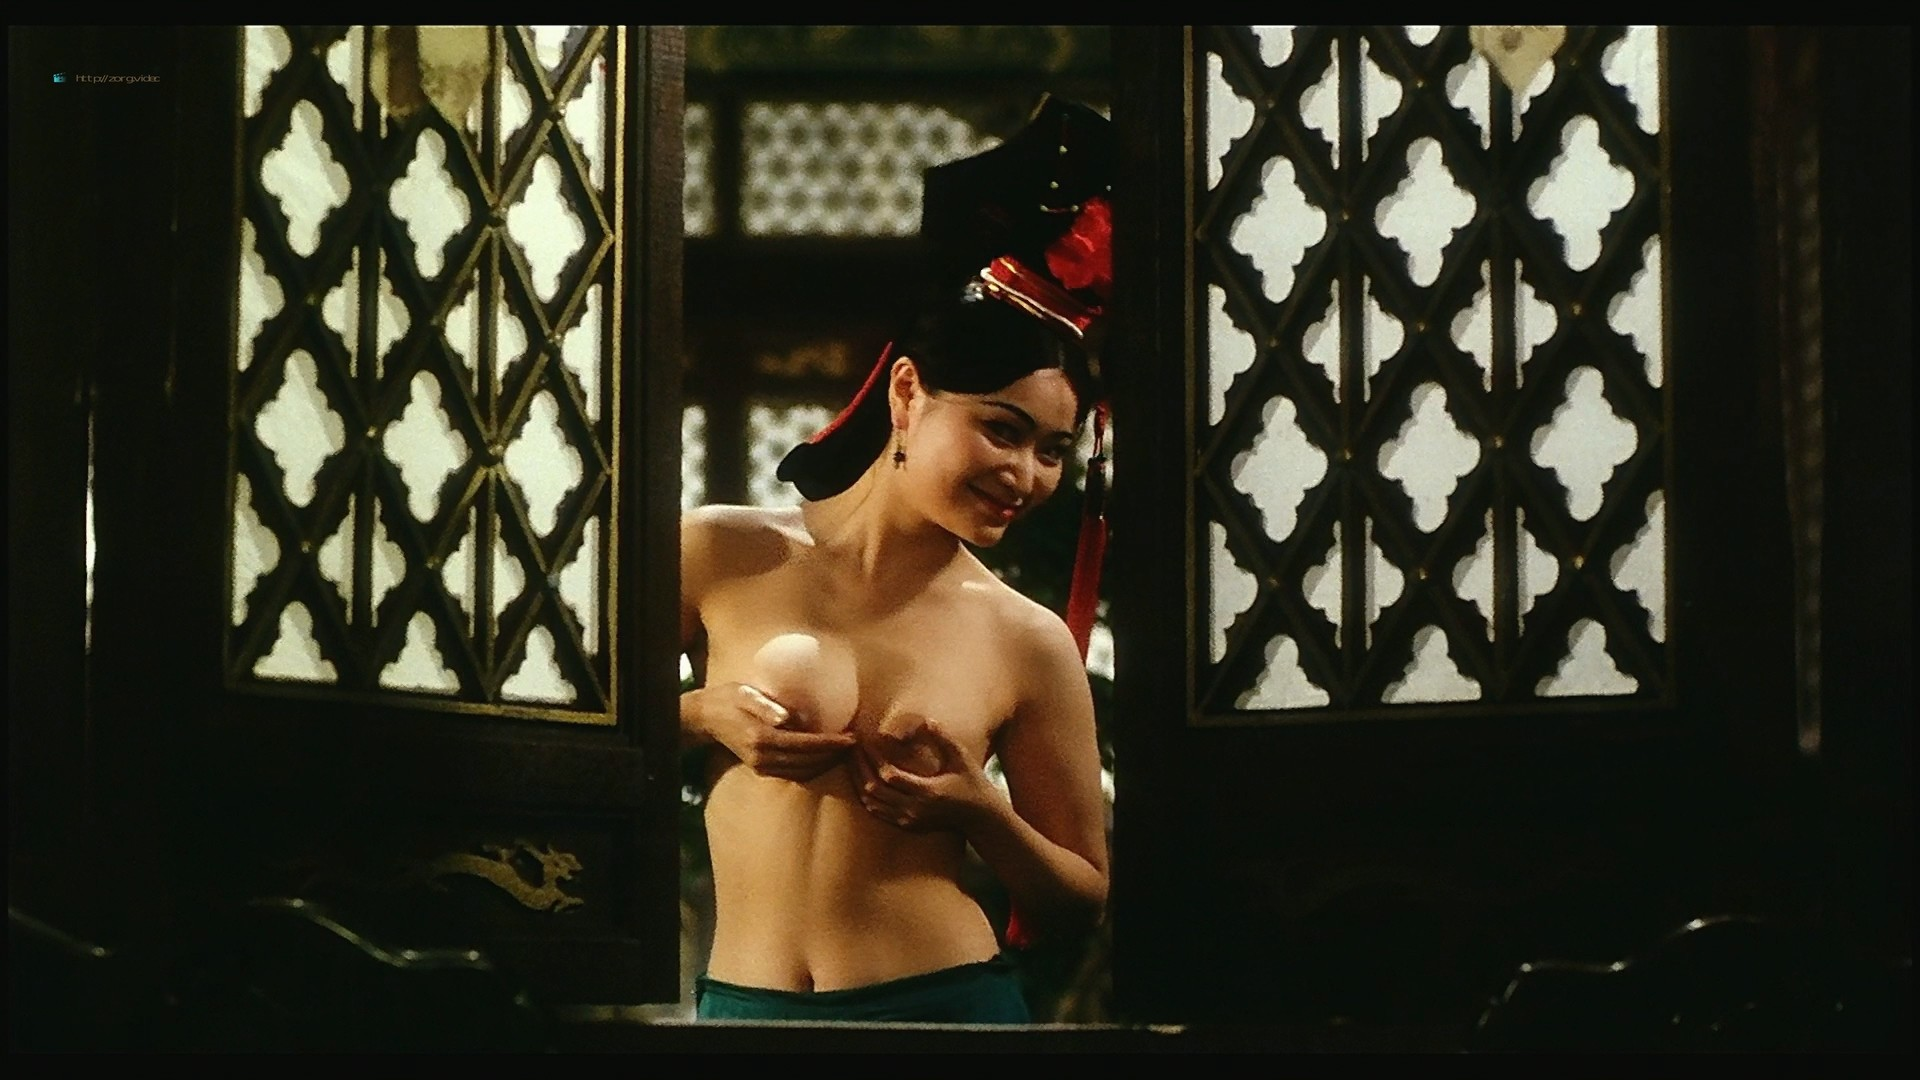 Yvonne Yung Hung nude and a lot of sex Julie Lee and others nude too - Sex and the Emperor (HK-1994) HD 1080p BluRay (12)